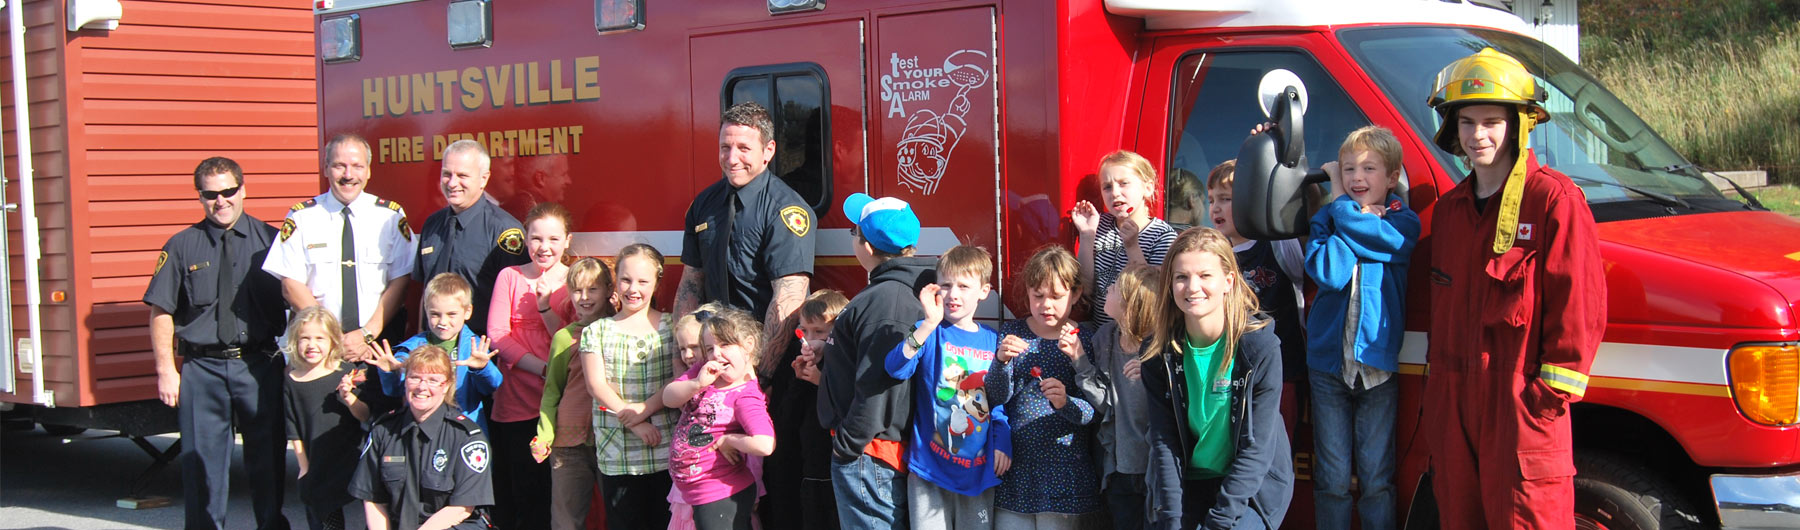 Kids posing with Fire fighters and the fire safety house